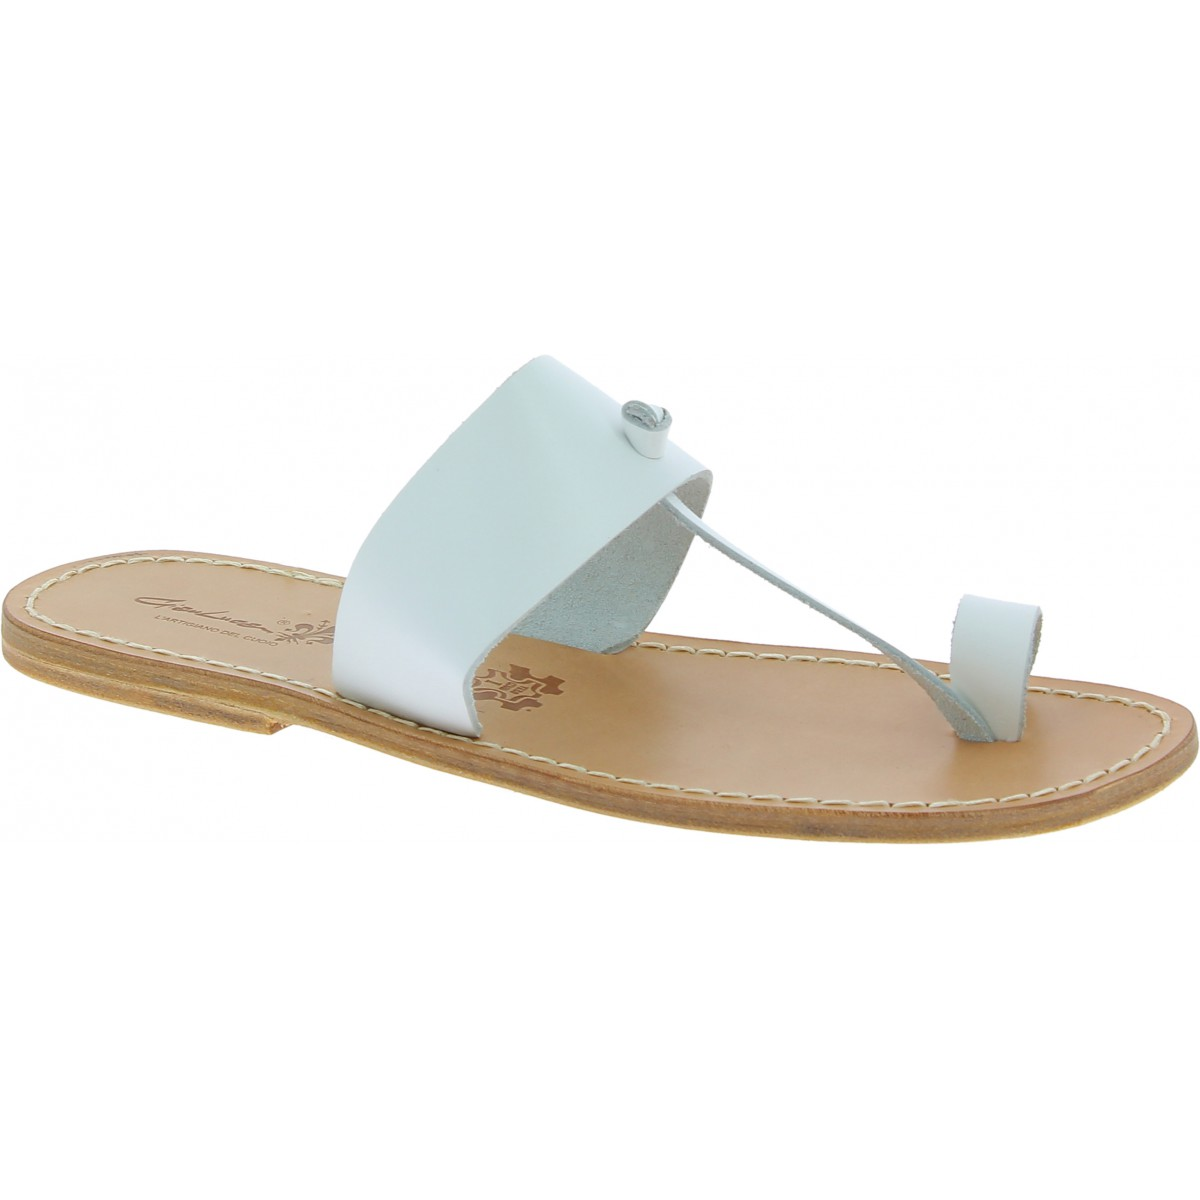 White leather thong sandals for men